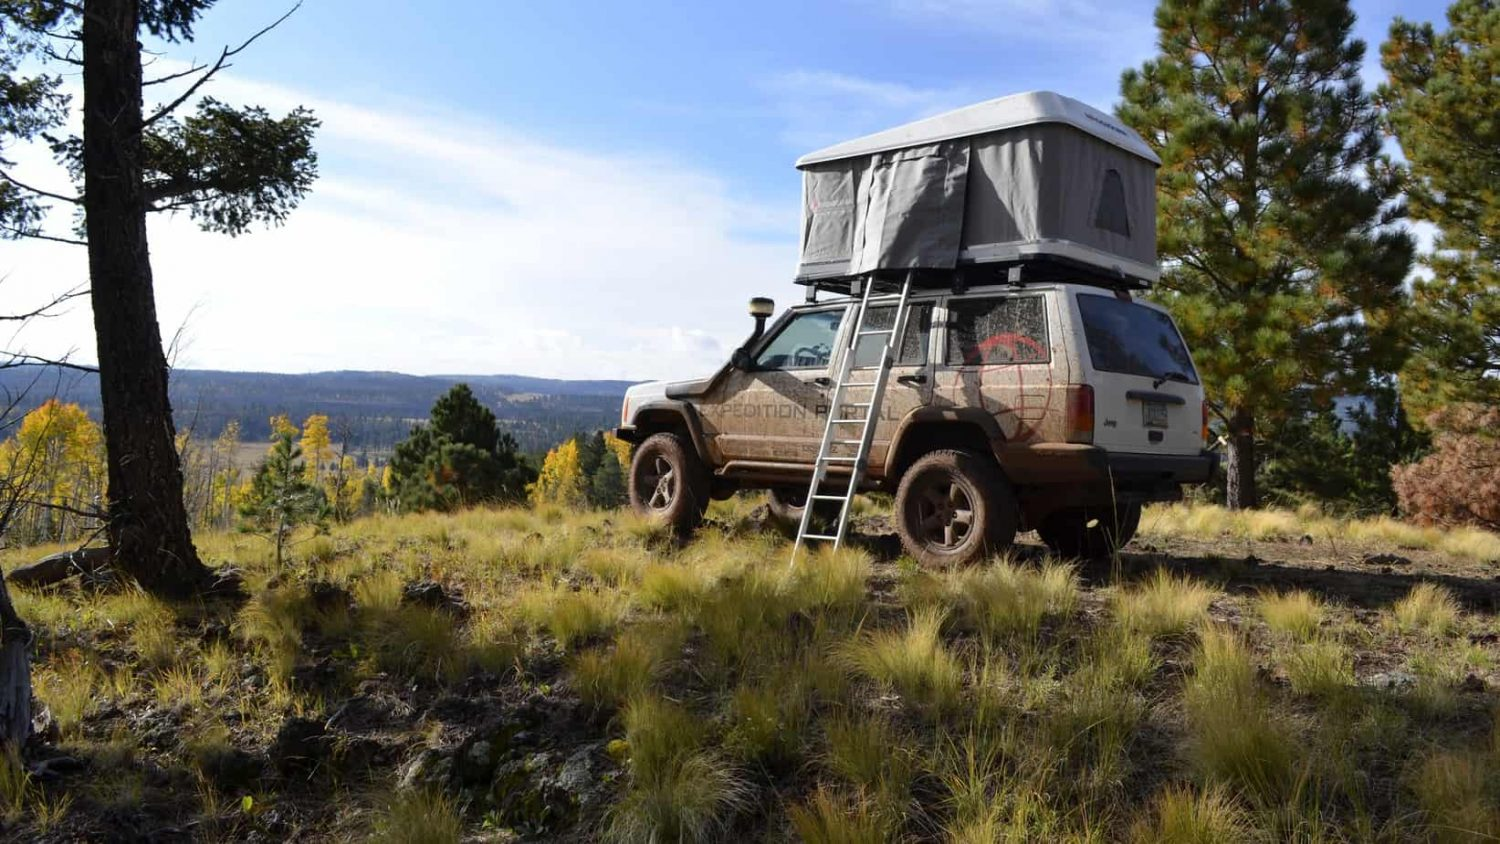 Camper Shell Camping >> Buyer's Guide: Hard Shell Roof Top Tents - Expedition Portal